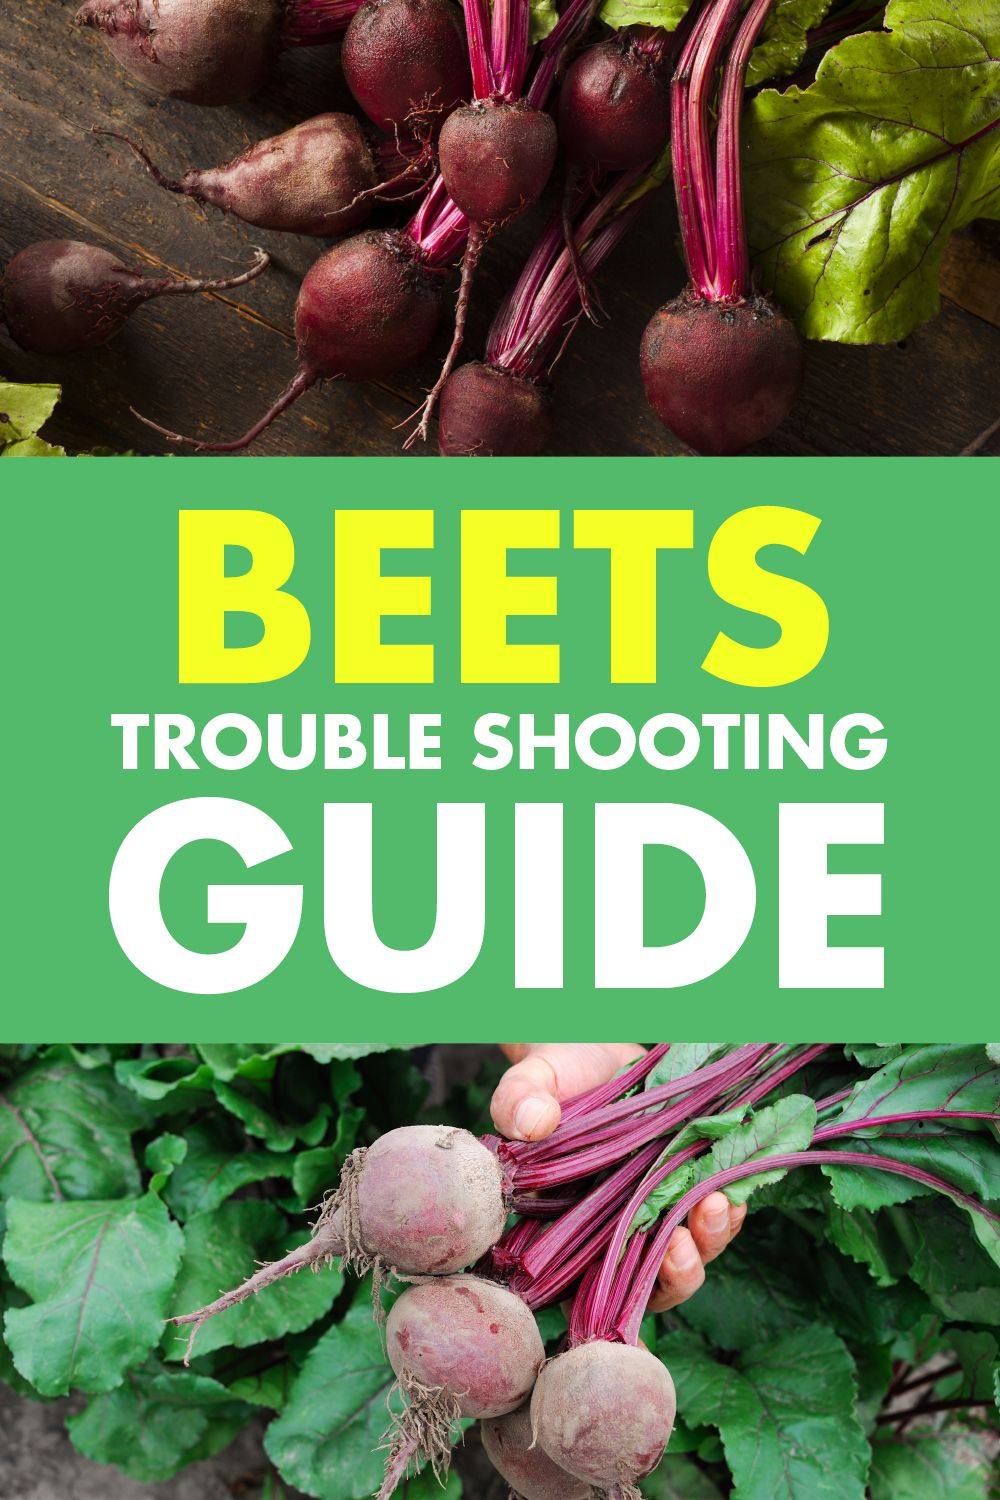 Beets Trouble Shooting Guide Luv2garden Com Growing Beets Beets Backyard Vegetable Gardens